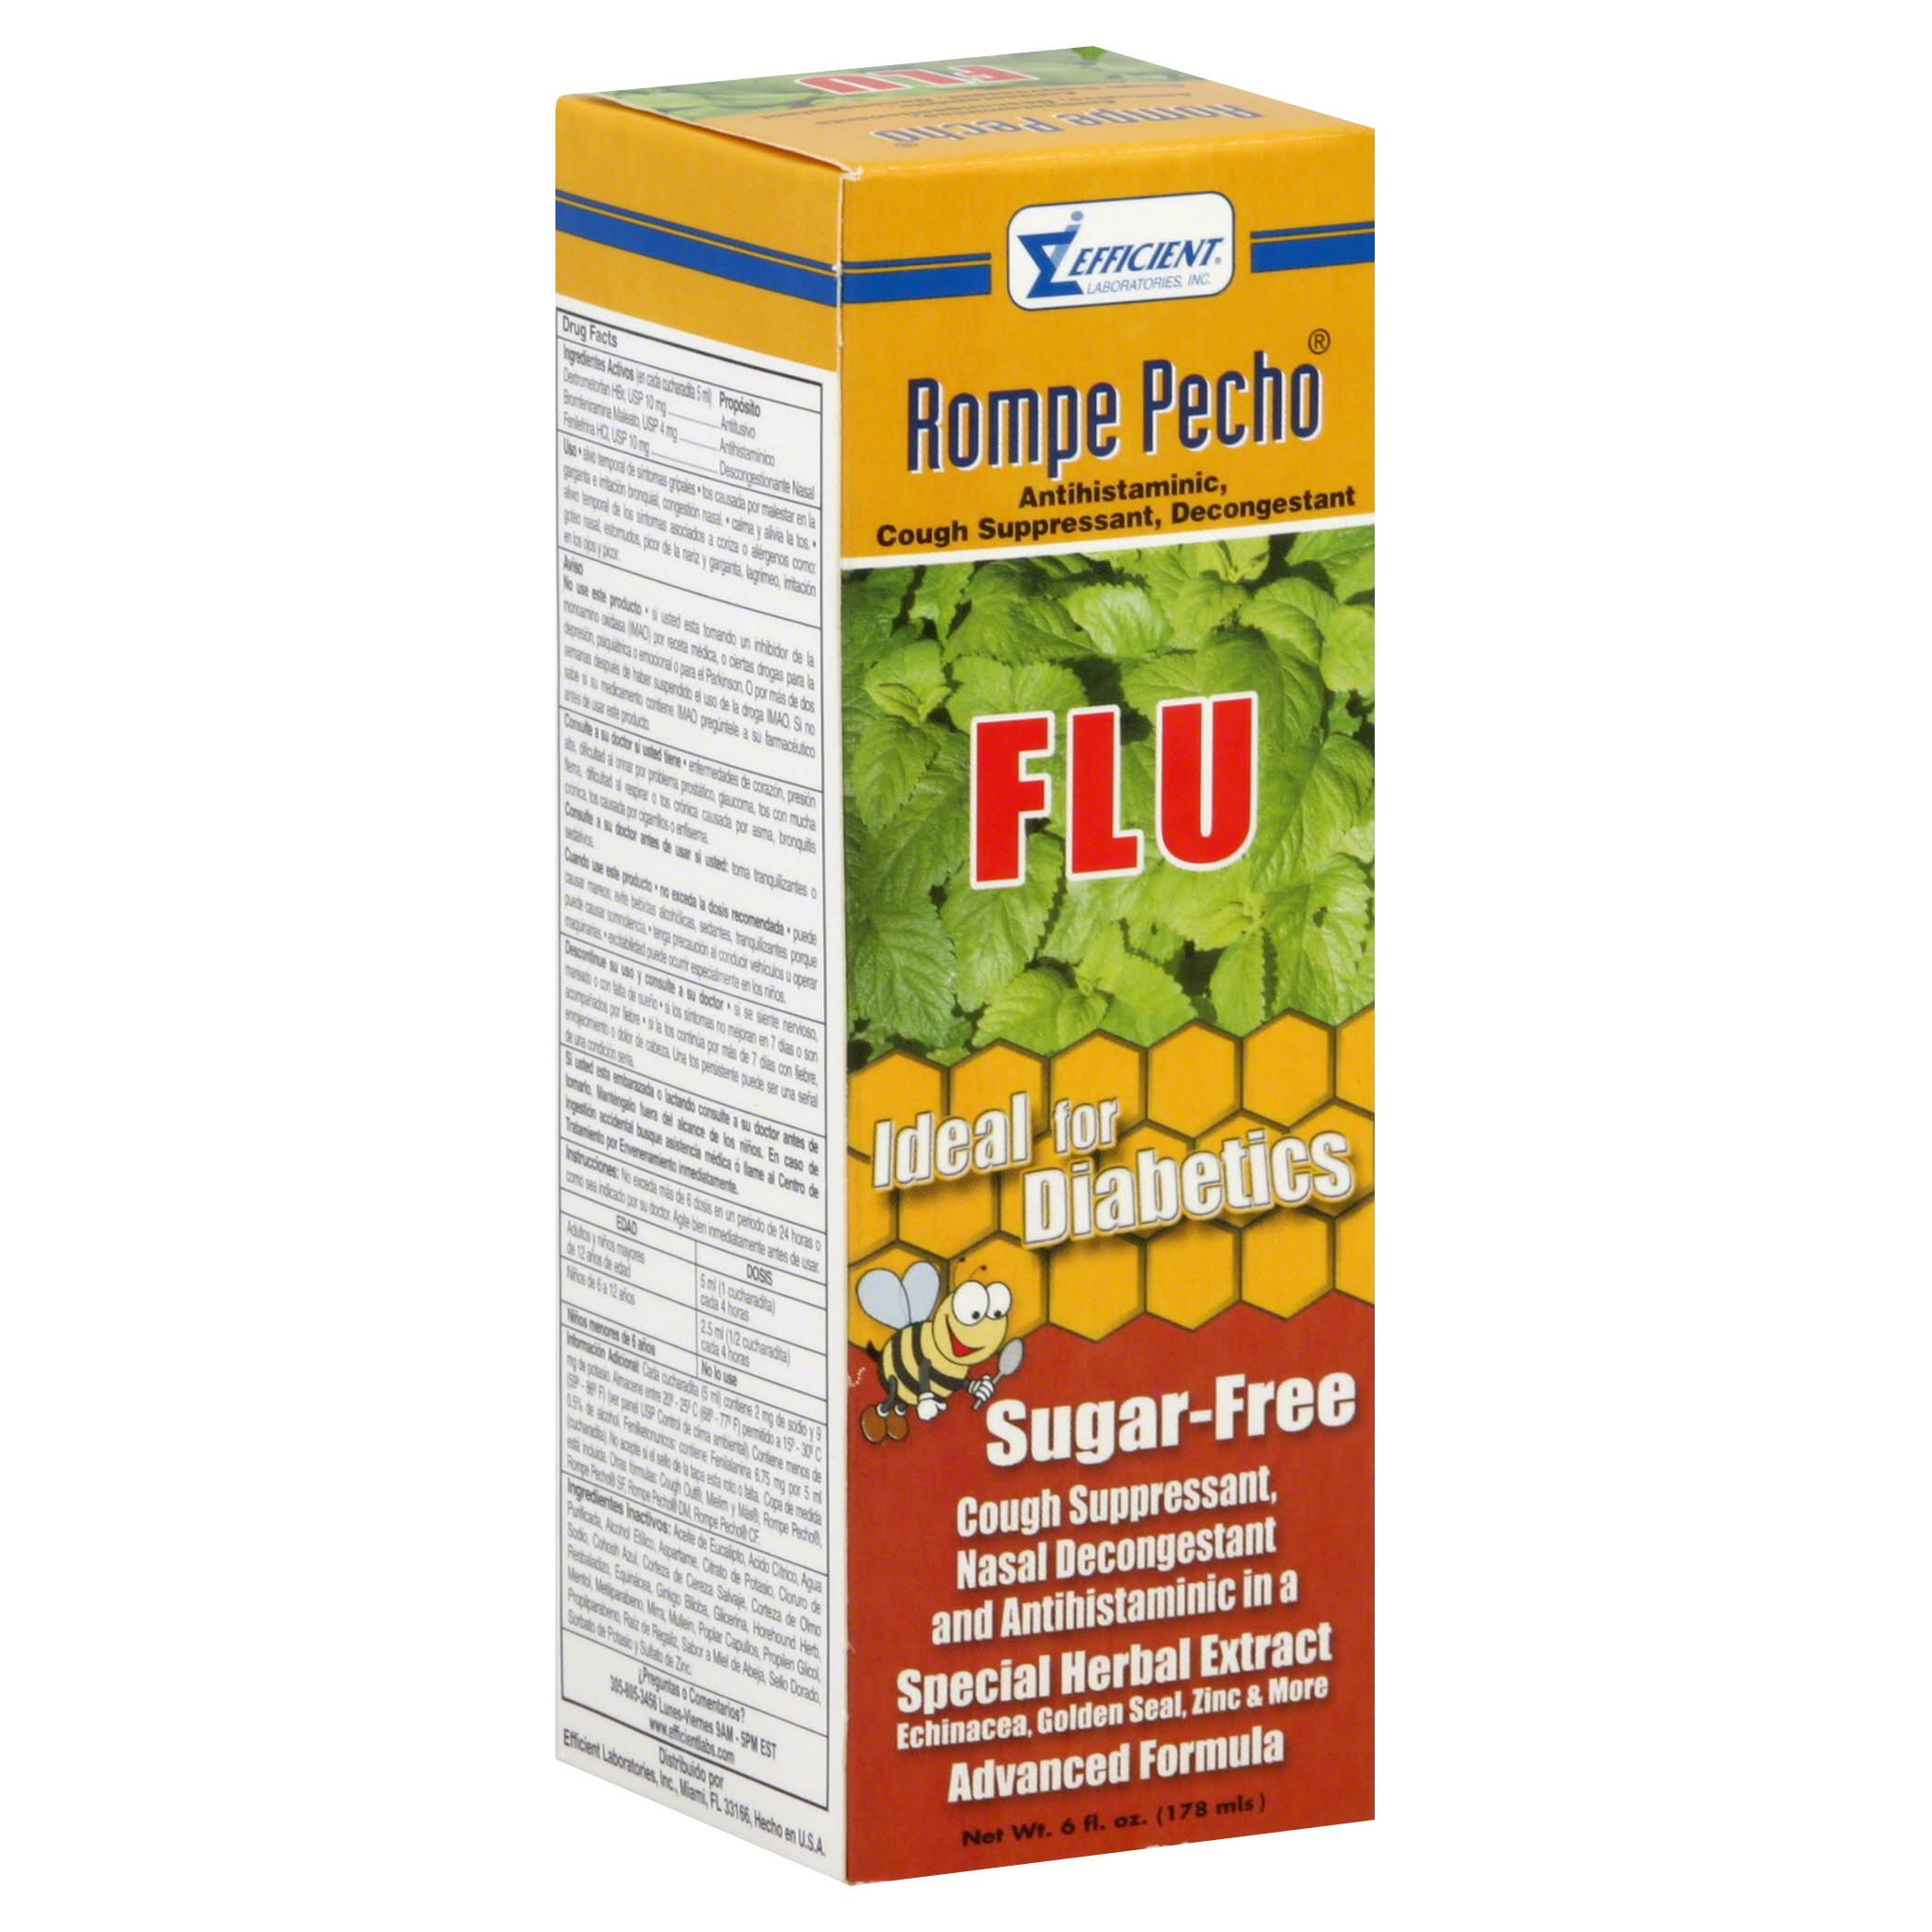 Rompe Pecho Sugar Free Cough and Flu Syrup - 6oz